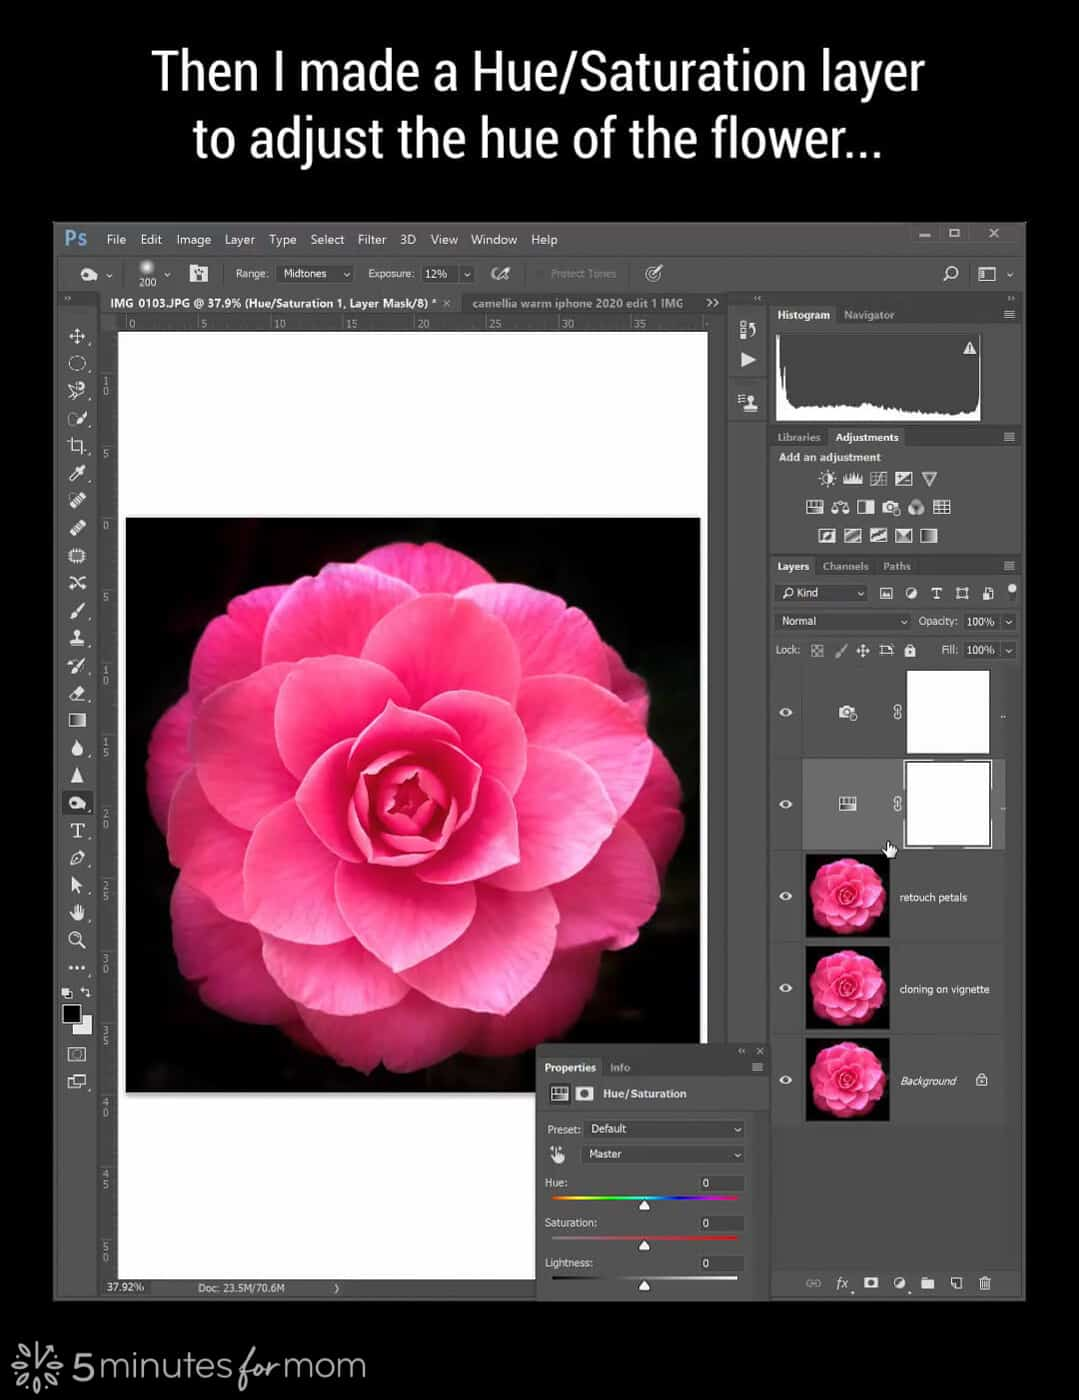 Hue Saturation adjustment layer in Photoshop